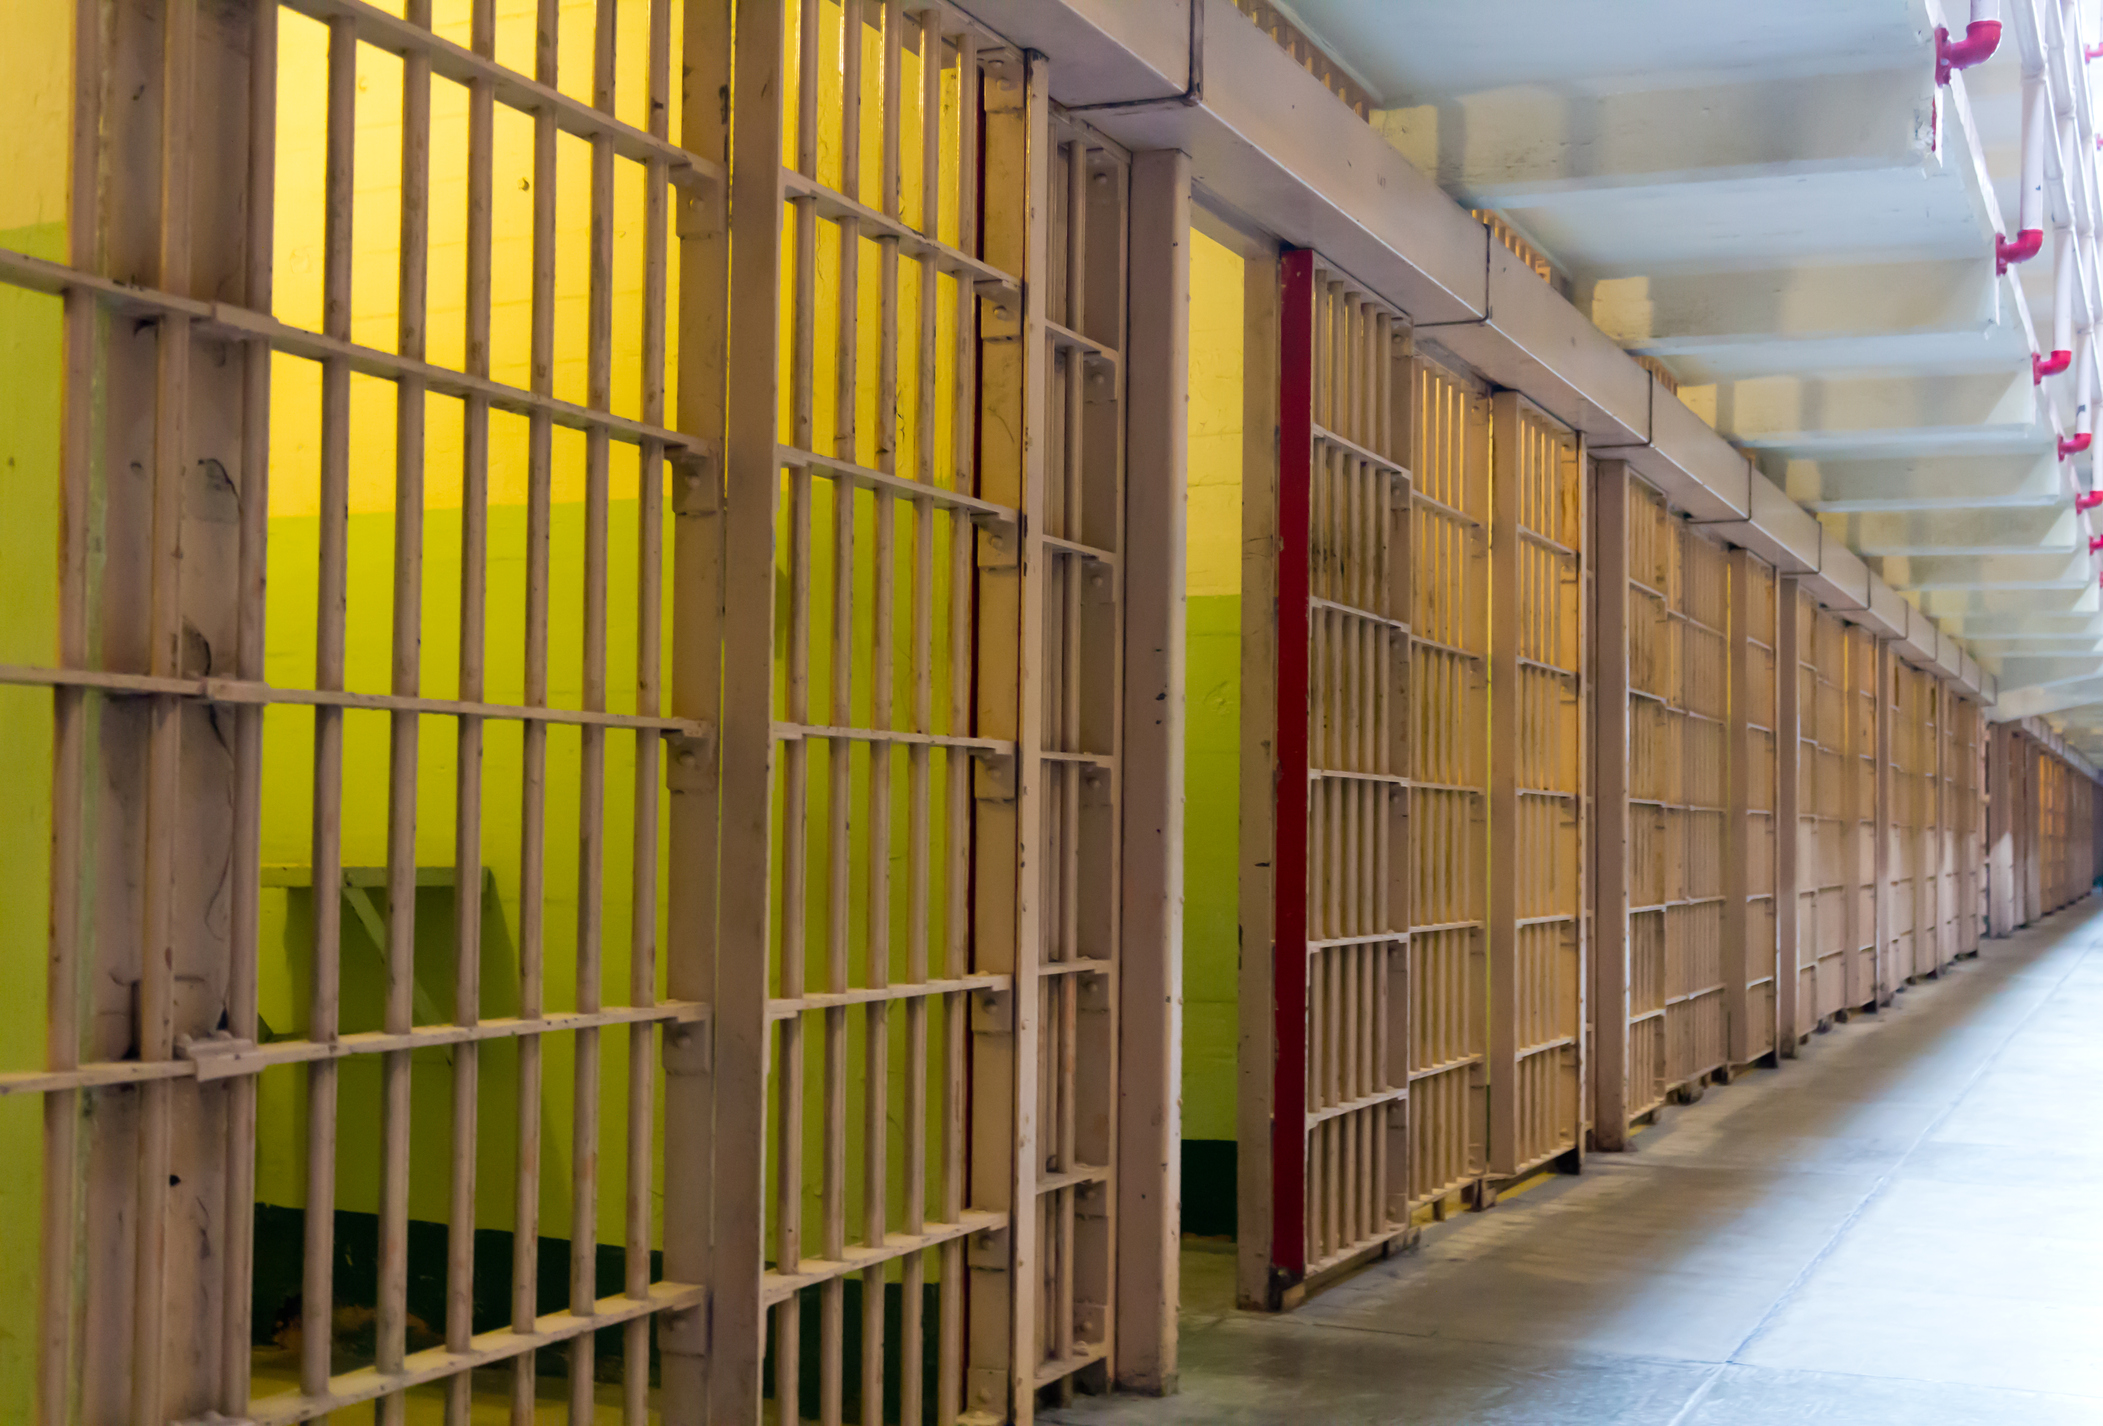 Prison cell bars for people who need a criminal defense lawyer